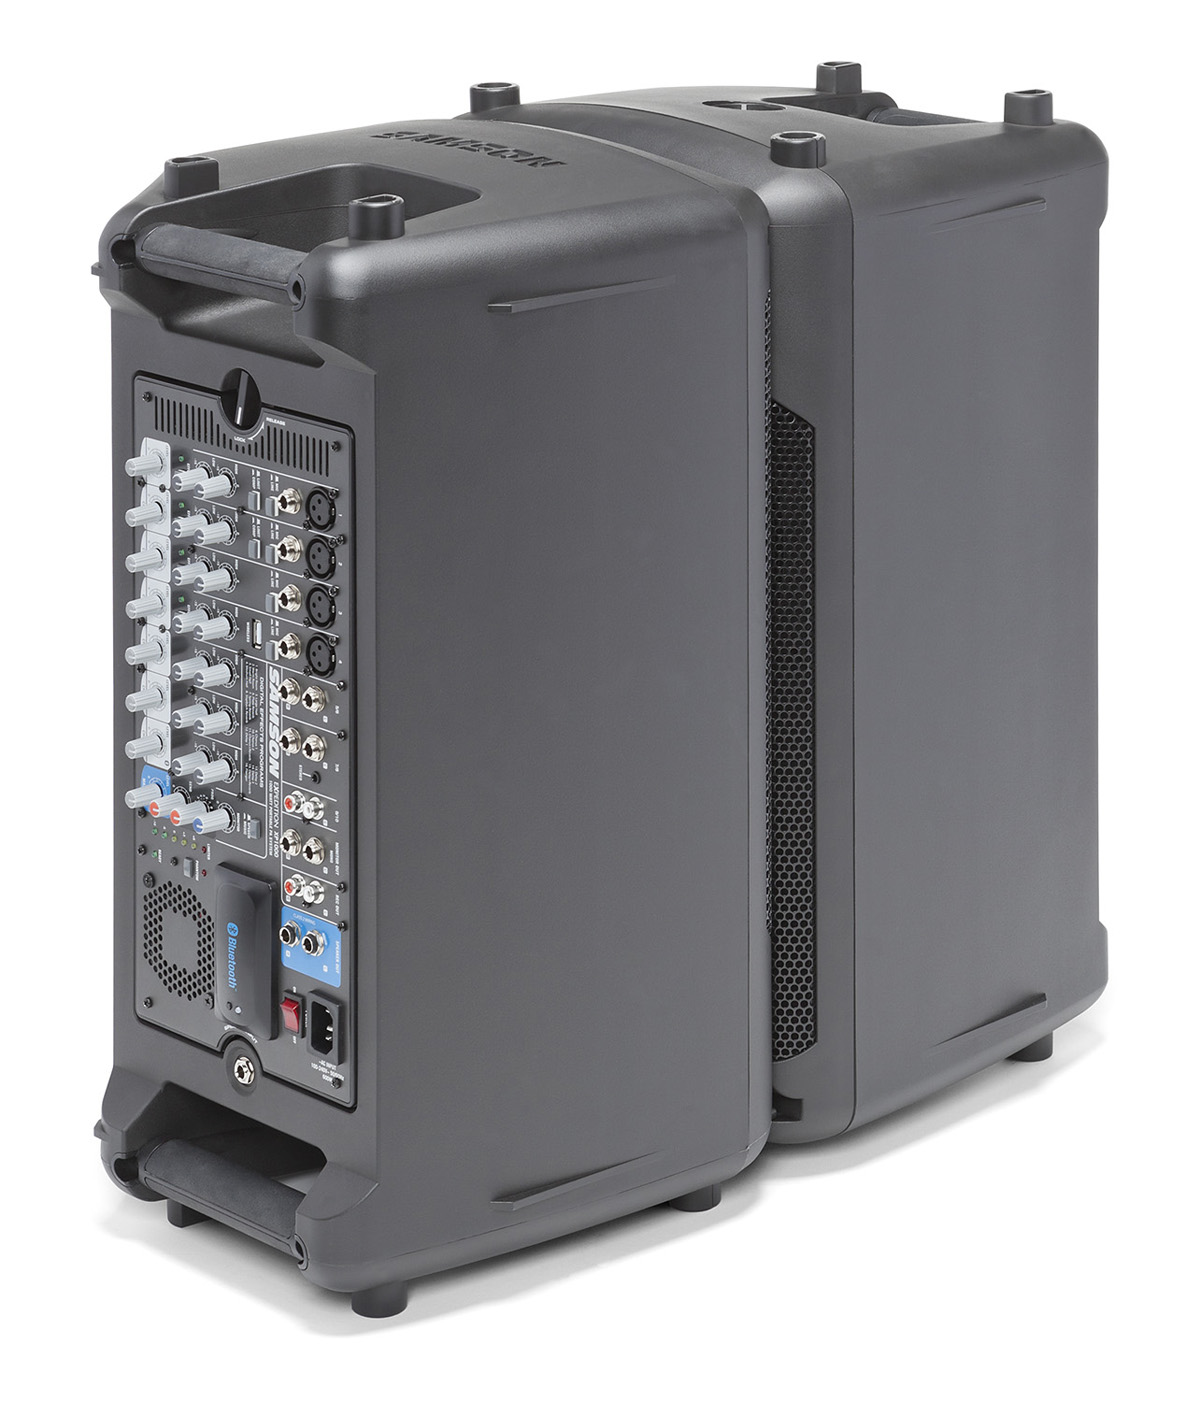 samson expedition xp1000 portable pa system with bluetooth 1000 watt. Black Bedroom Furniture Sets. Home Design Ideas